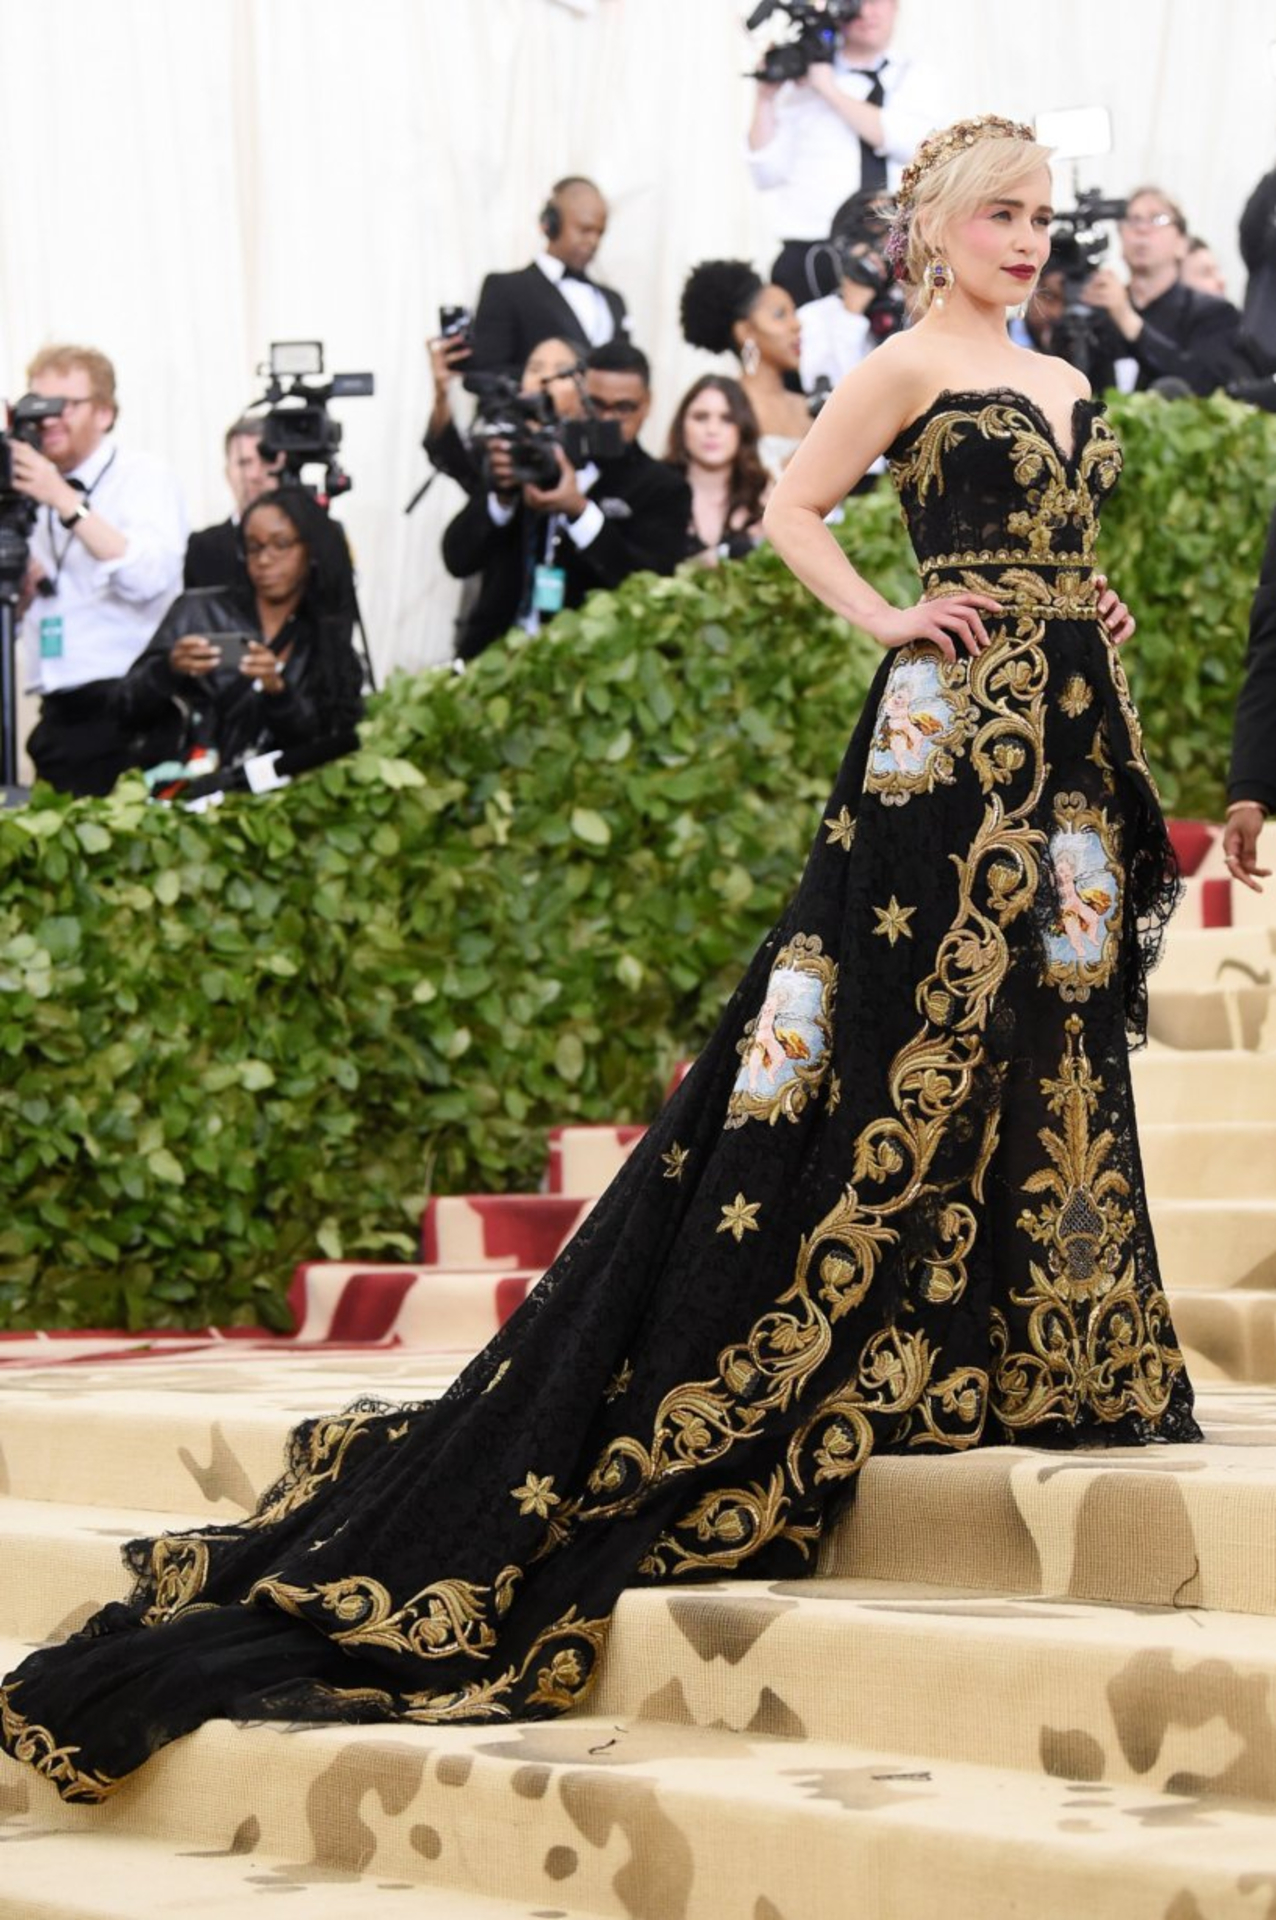 shopaholicpals - emilia clarke met gala 2018 getty images full stairs